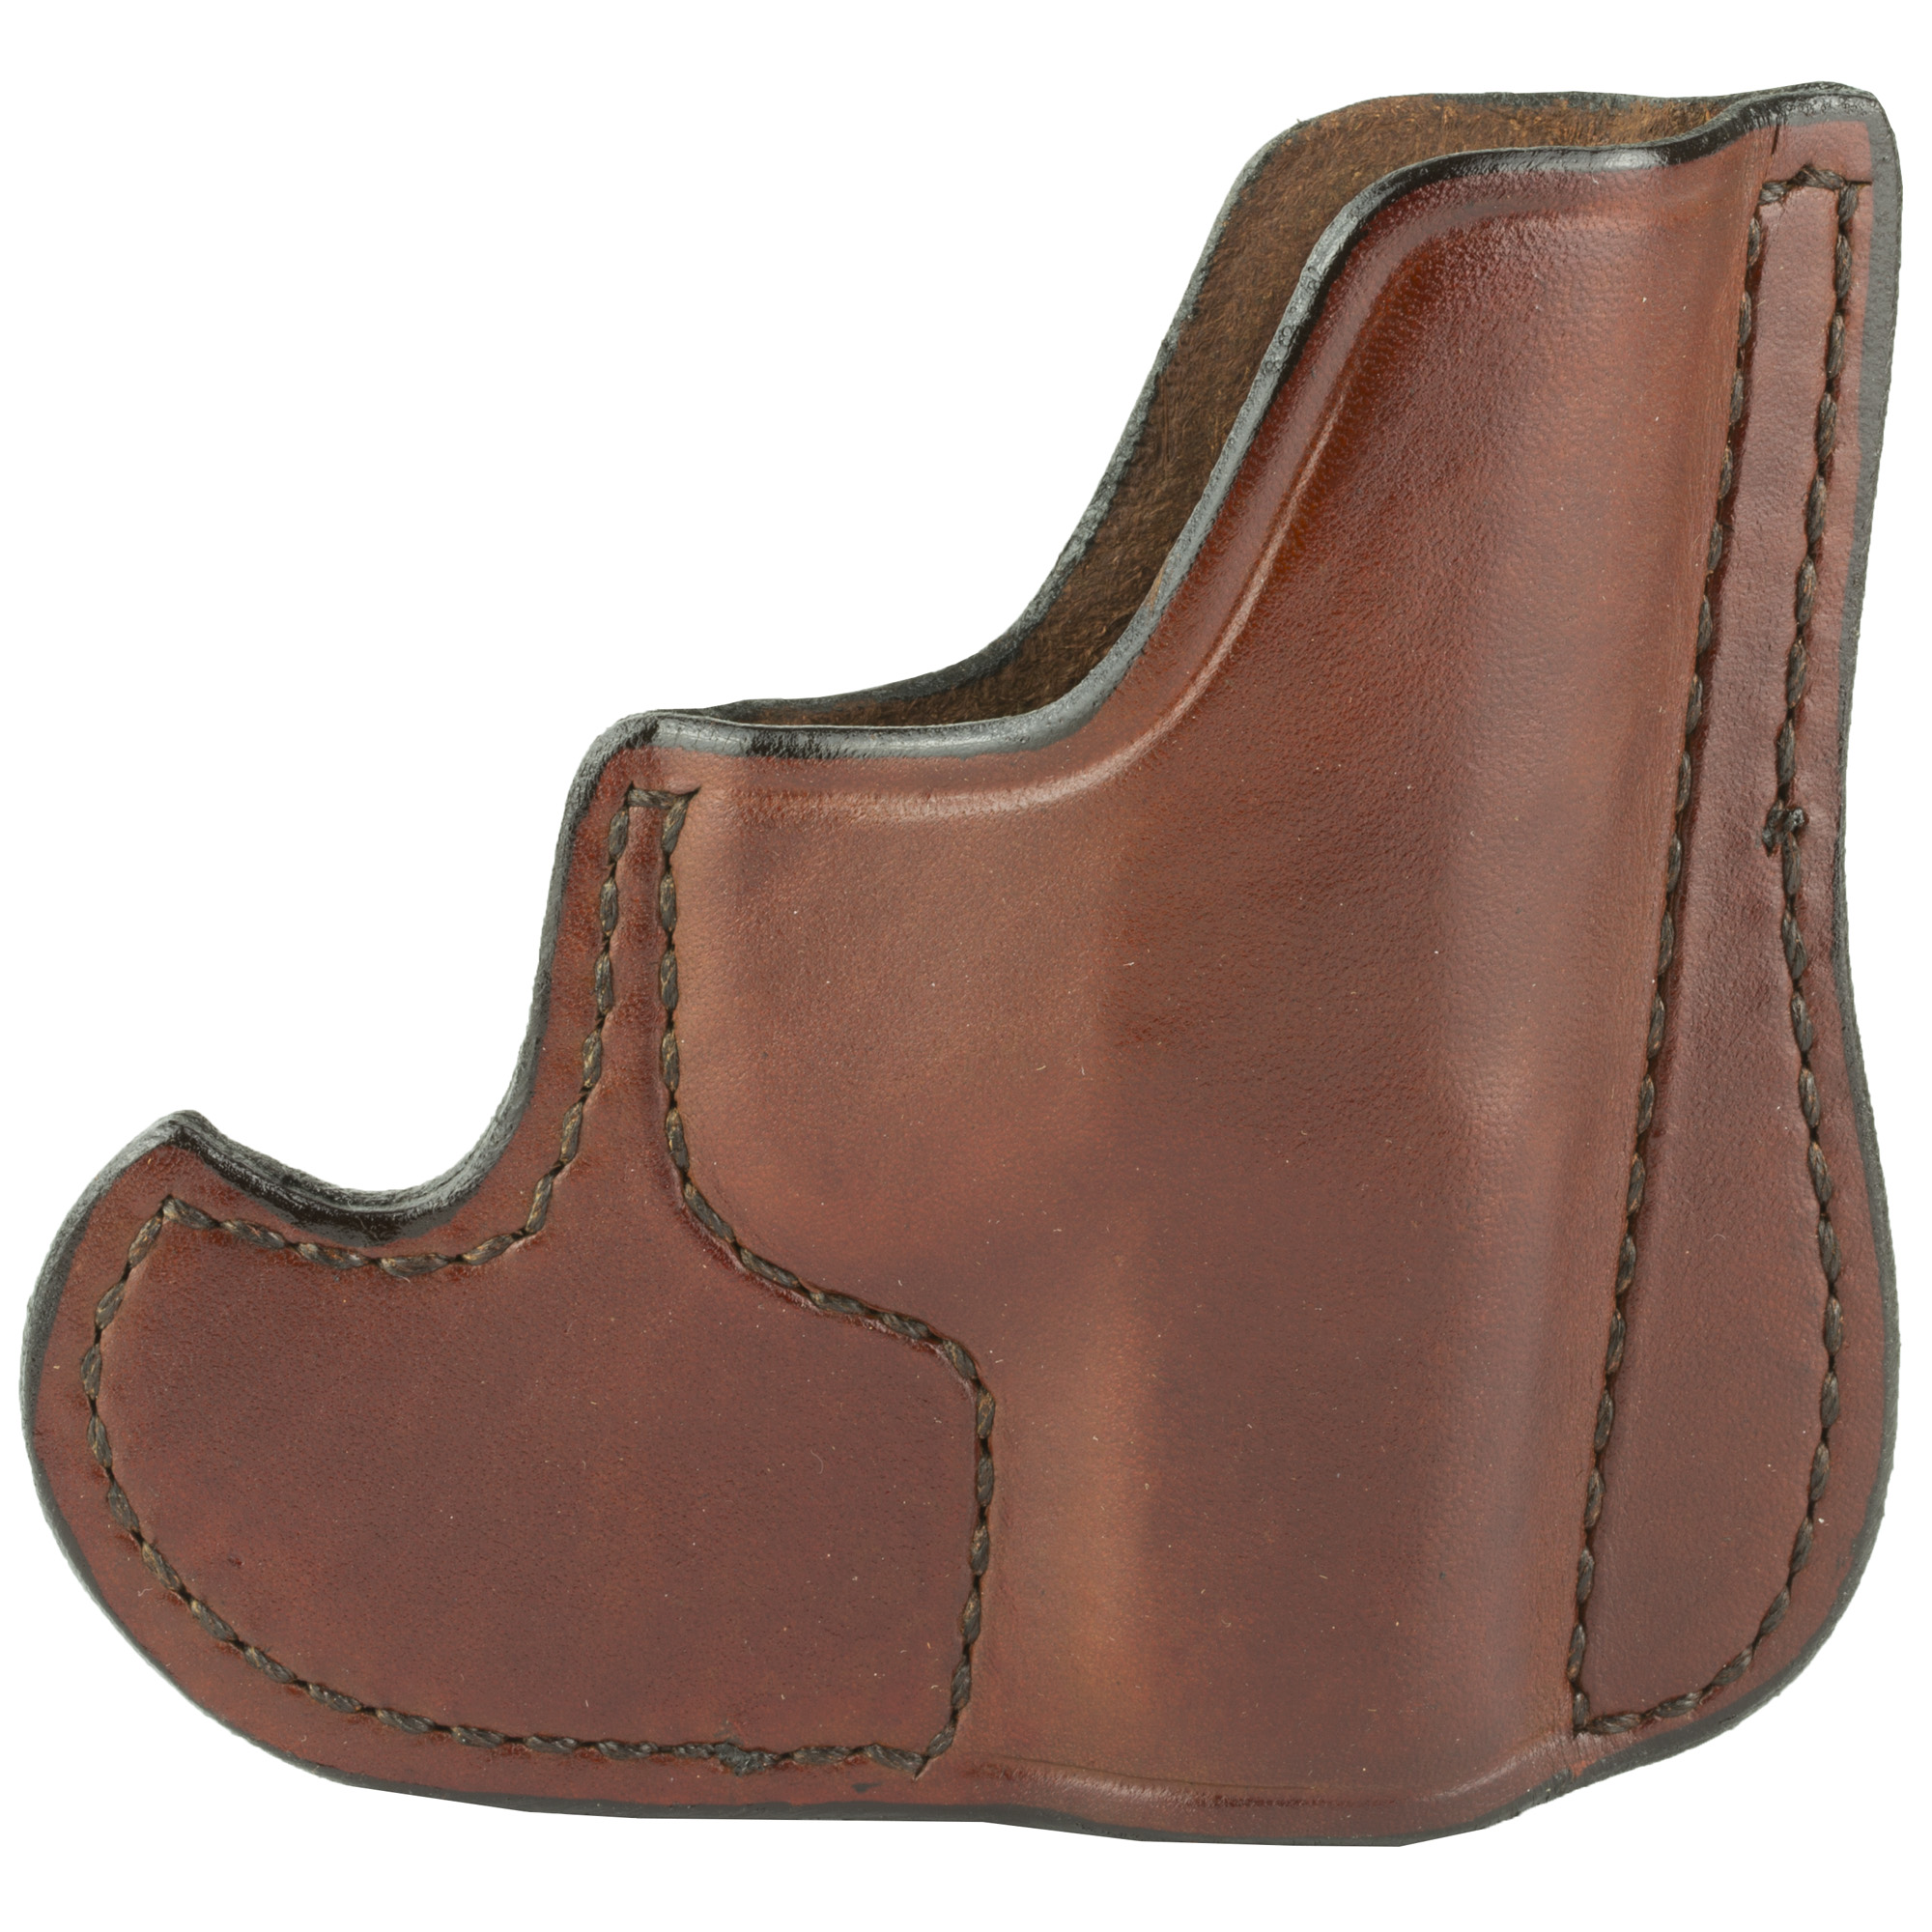 The 001 Front Pocket holster can be carried in the front pocket or a jacket pocket. The design of this holster conceals the shape of the firearm and keeps it in the ready position. When used in proper sized pockets the hooked shape will catch on the pocket so you can draw the firearm out of the holster while it remains in the pocket or falls away. Can be used Right or Left Handed.